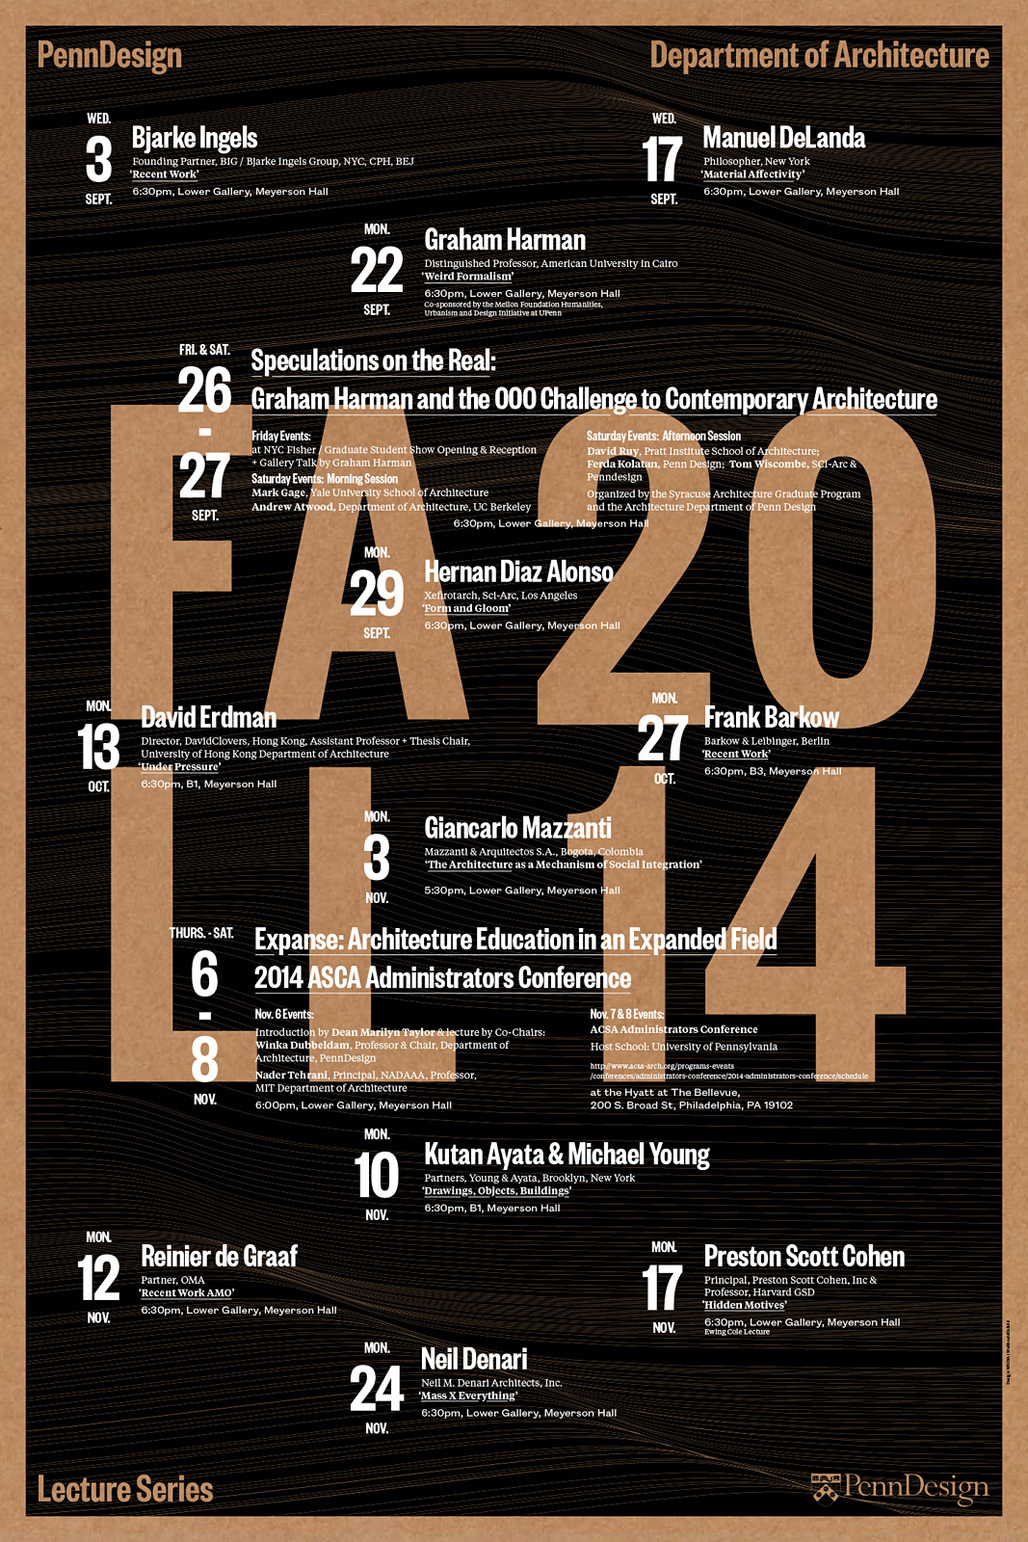 PennDesign Dept. of Architecture Fall 2014 Lecture Poster, designed by WSDIA | WeShouldDoItAll. Image courtesy of WeShouldDoItAll.